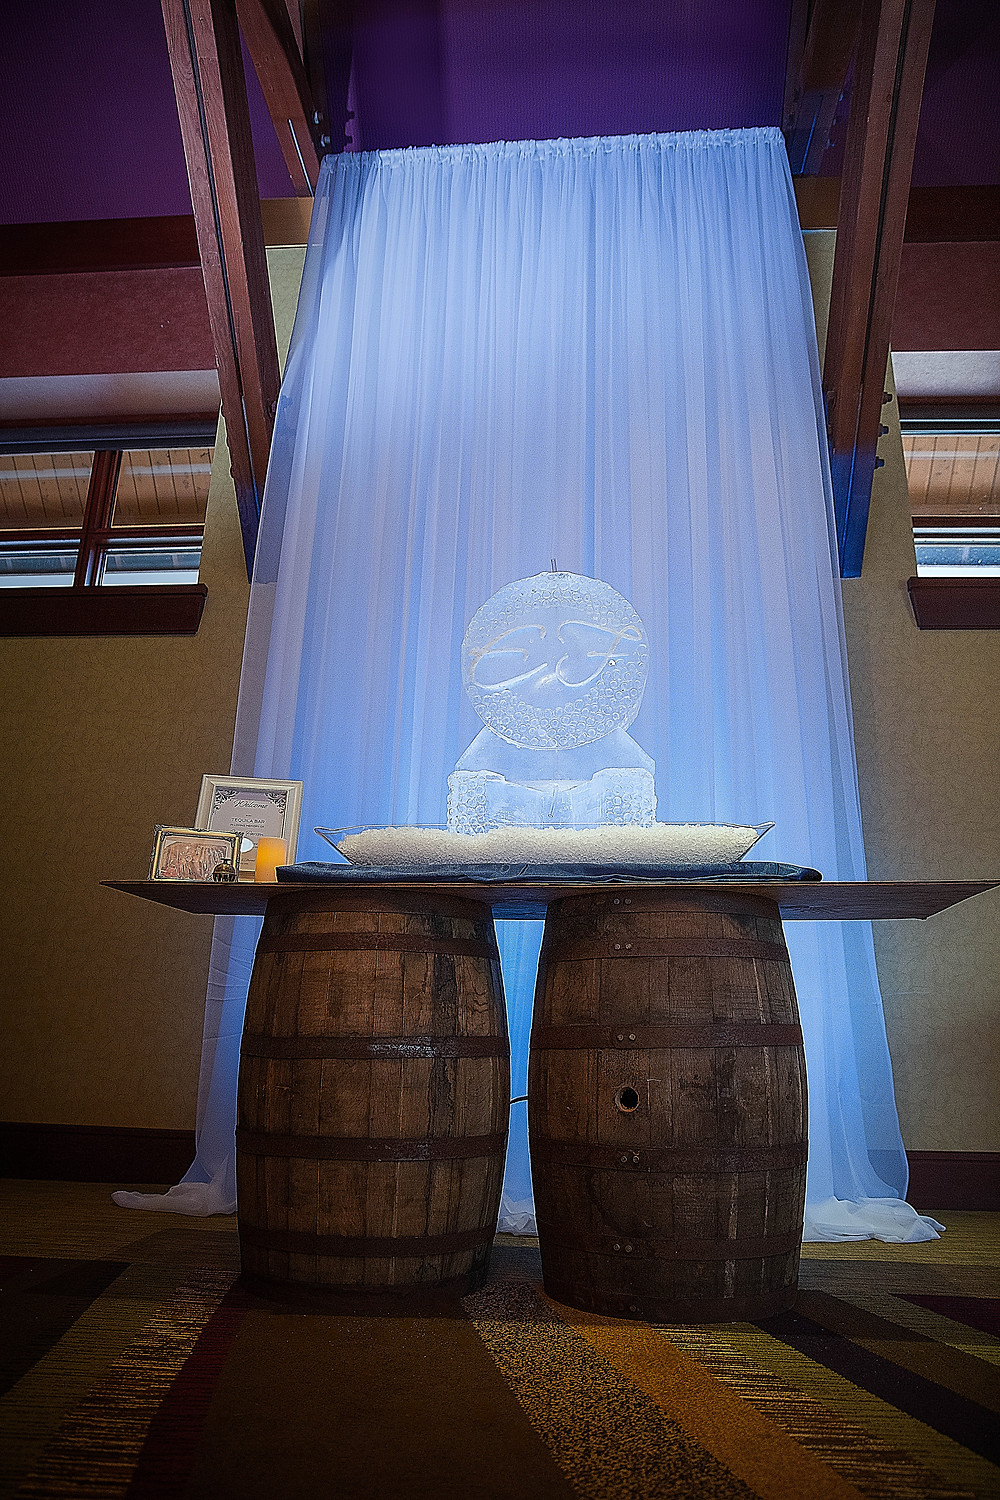 Memorial Ice luge and tequila shots on whiskey barrel bar